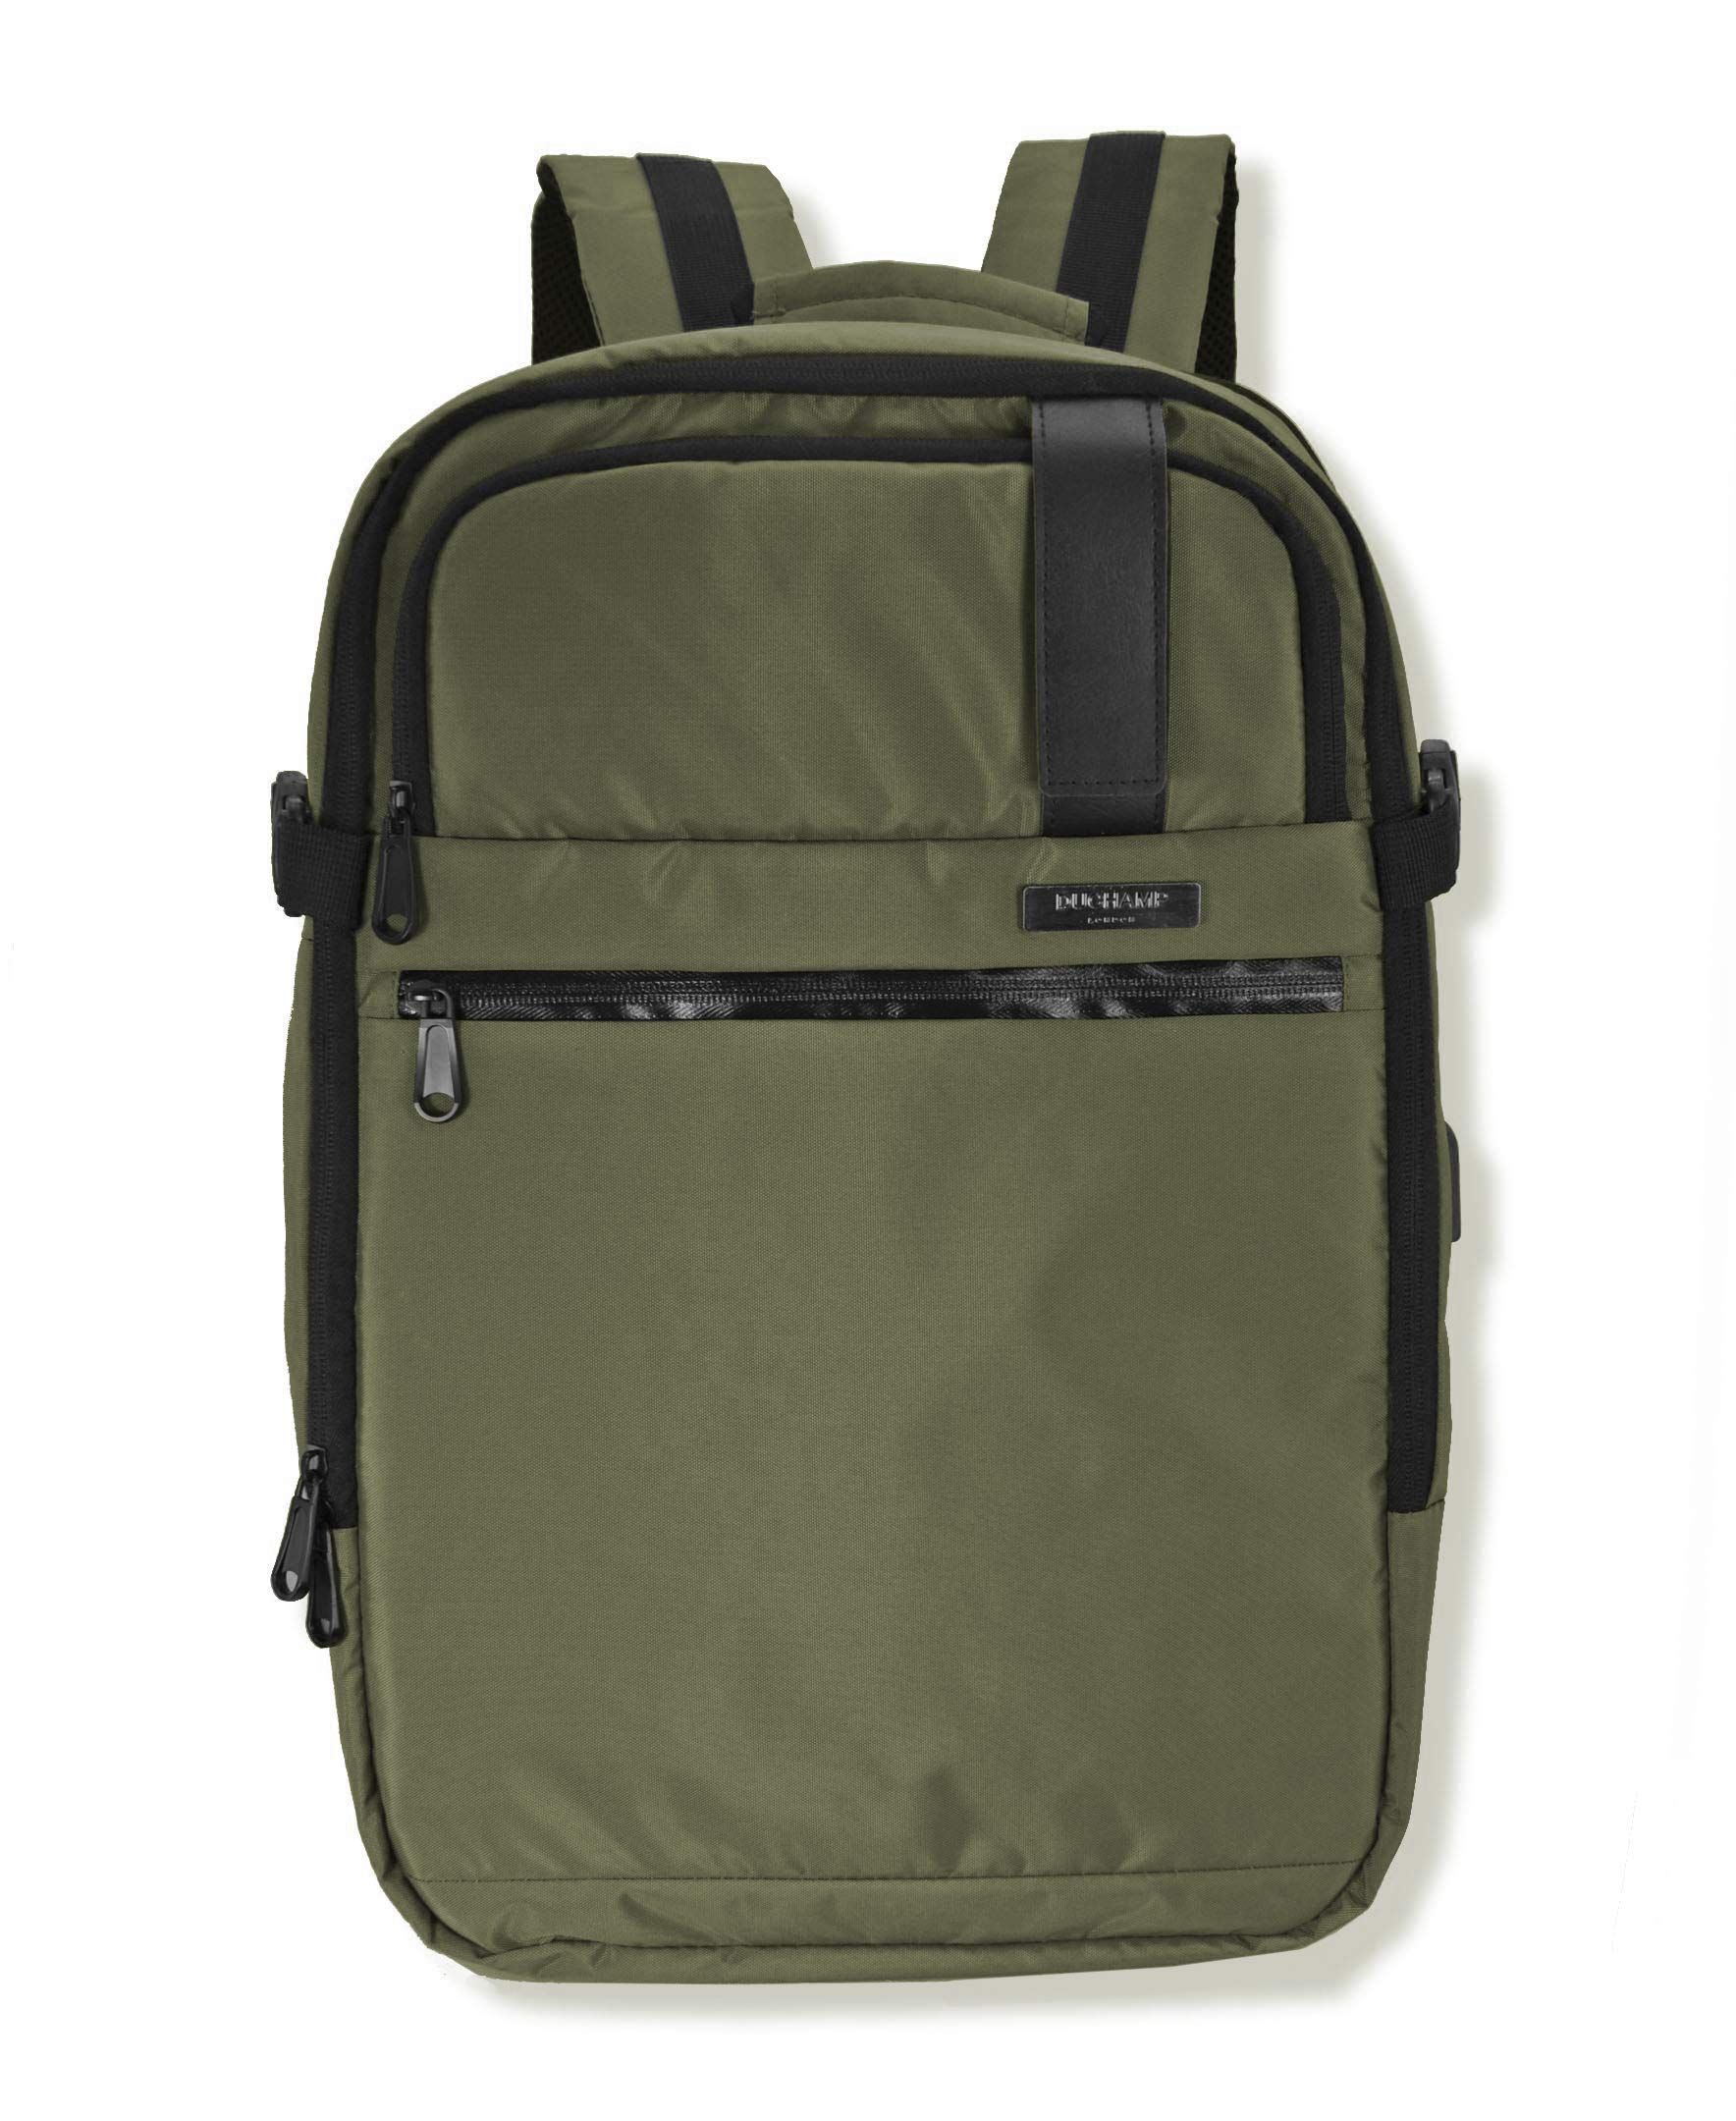 Duchamp Getaway Expandable Carry-On Backpack Suitcase